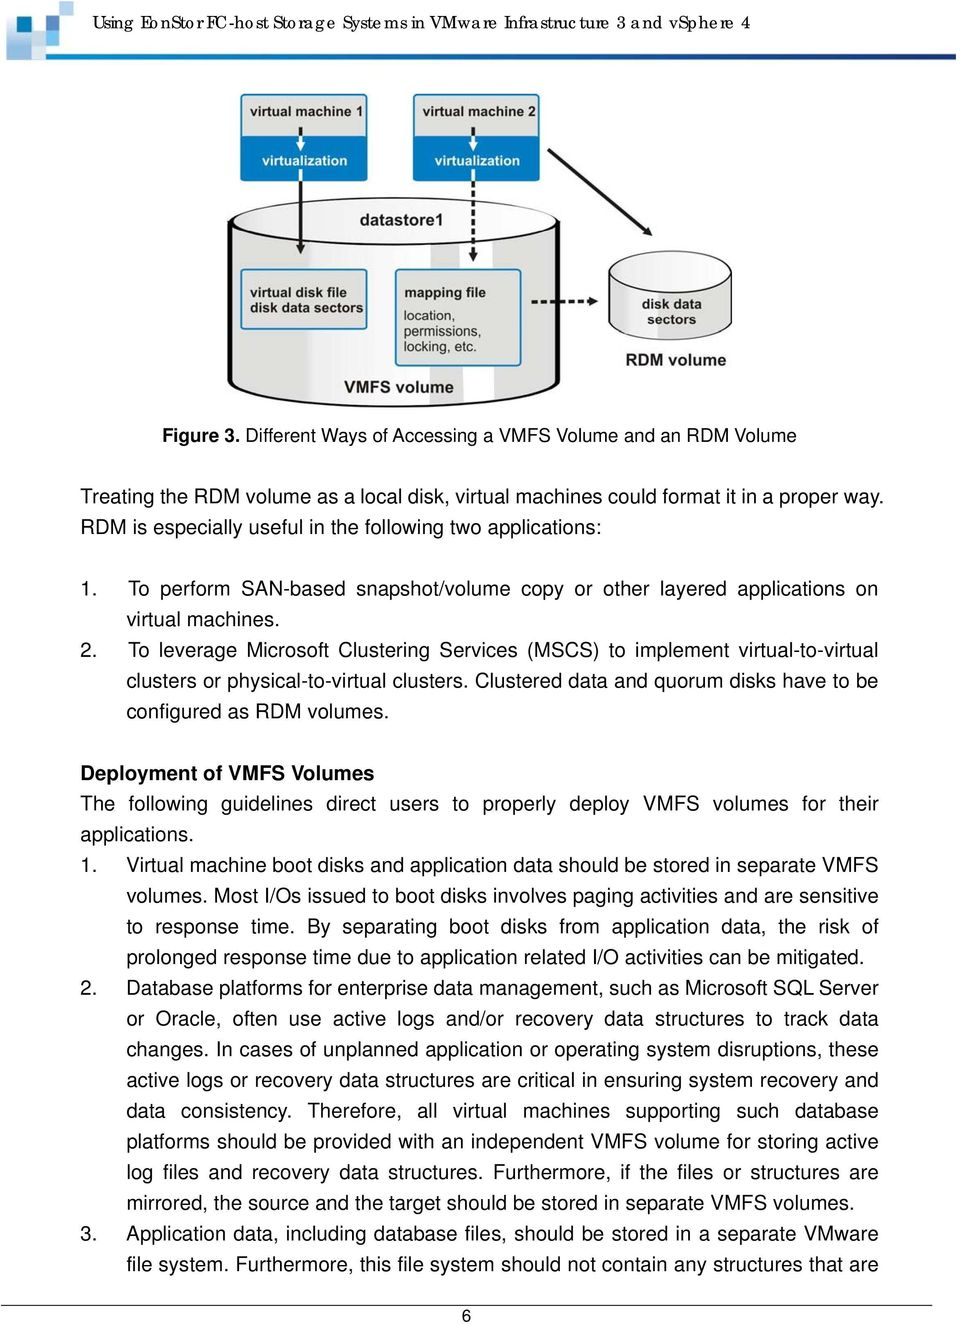 To leverage Microsoft Clustering Services (MSCS) to implement virtual-to-virtual clusters or physical-to-virtual clusters. Clustered data and quorum disks have to be configured as RDM volumes.